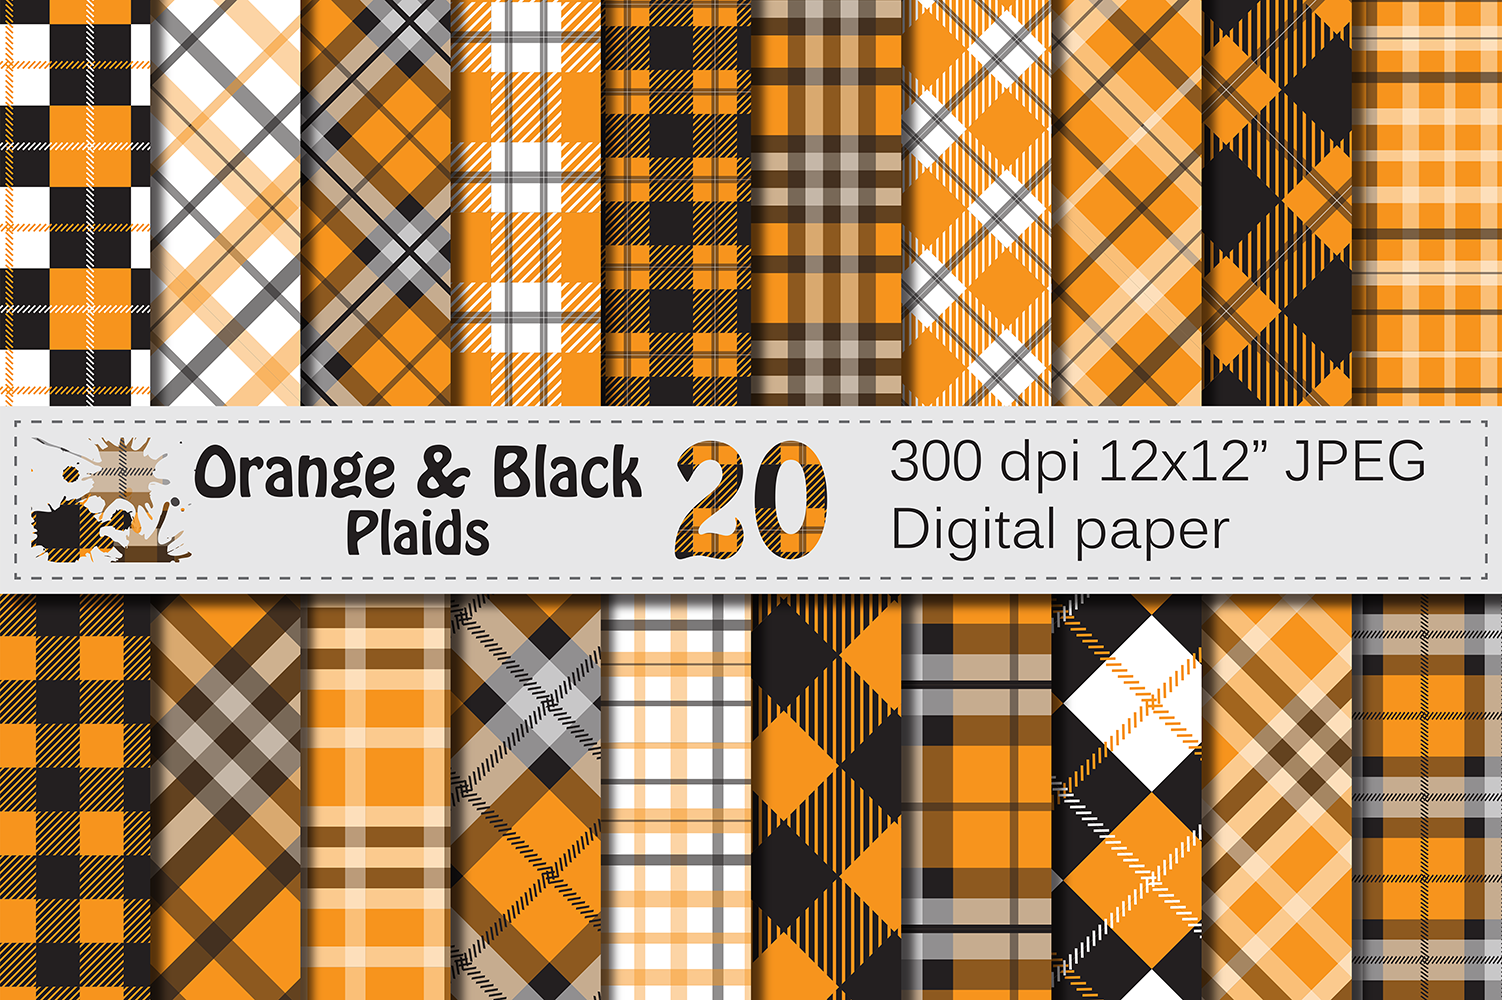 Orange and Black Plaid Digital Papers / backgrounds example image 1